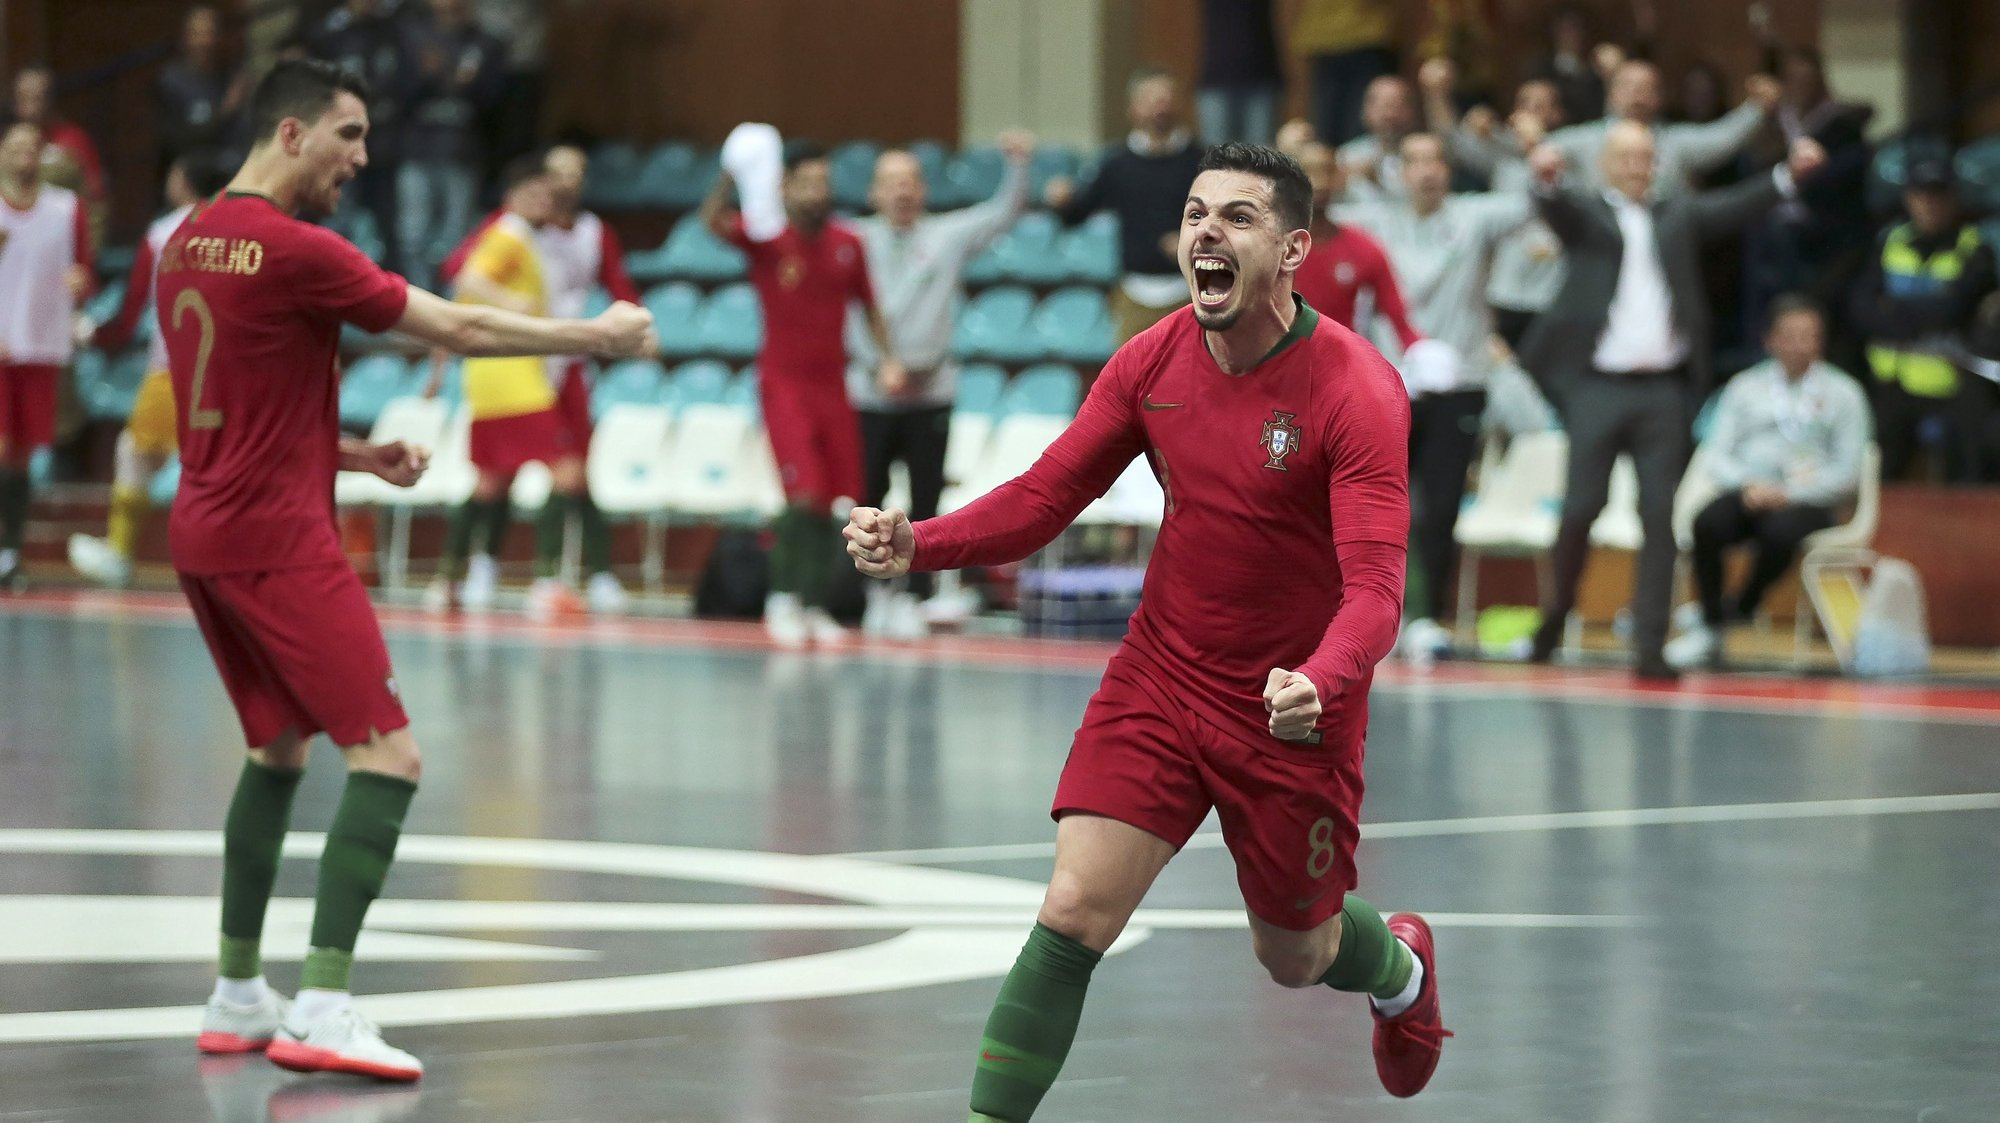 epa08183231 Portugal's Bruno Coelho celebrates after scoring a goal against Finland during their qualifying match for the World Cup Indoor Soccer 2020, at Municipal Pavilion, Povoa de Varzim, Portugal 31 January 2020.  EPA/MANUEL FERNANDO ARAUJO